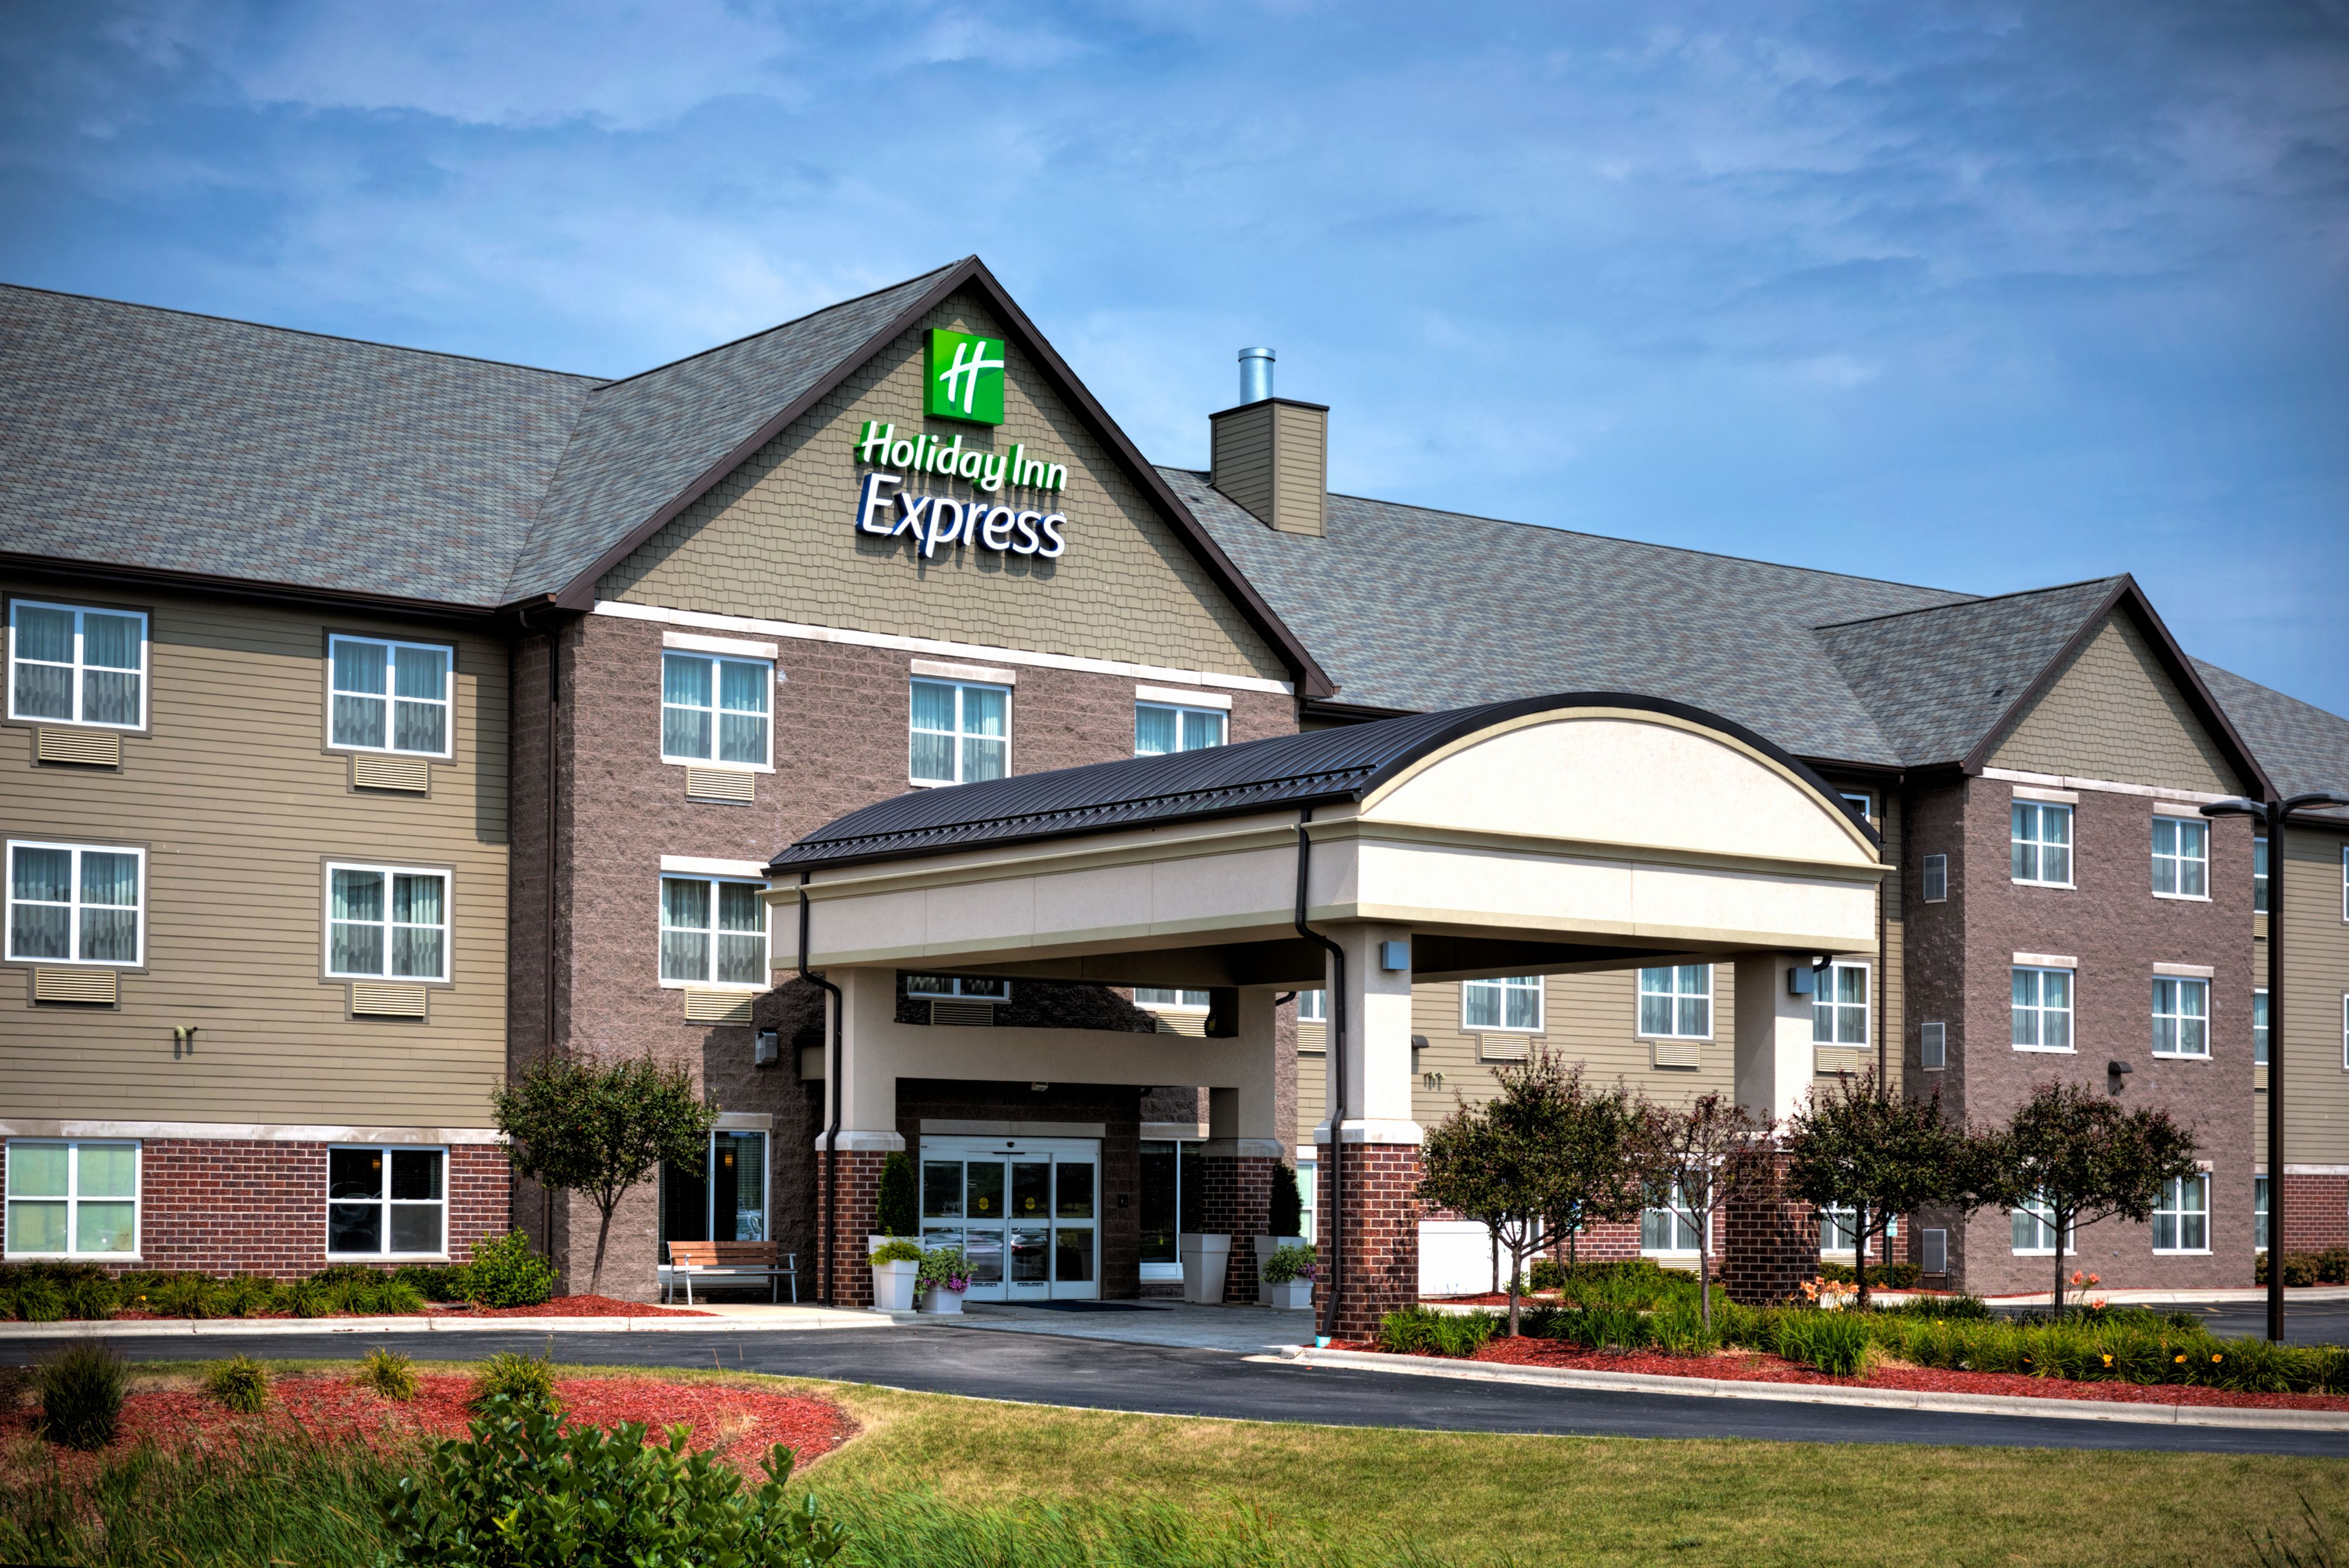 Holiday Inn Express Suites Great Falls At 1625 Marketplace Drive Great Falls Mt On Fave